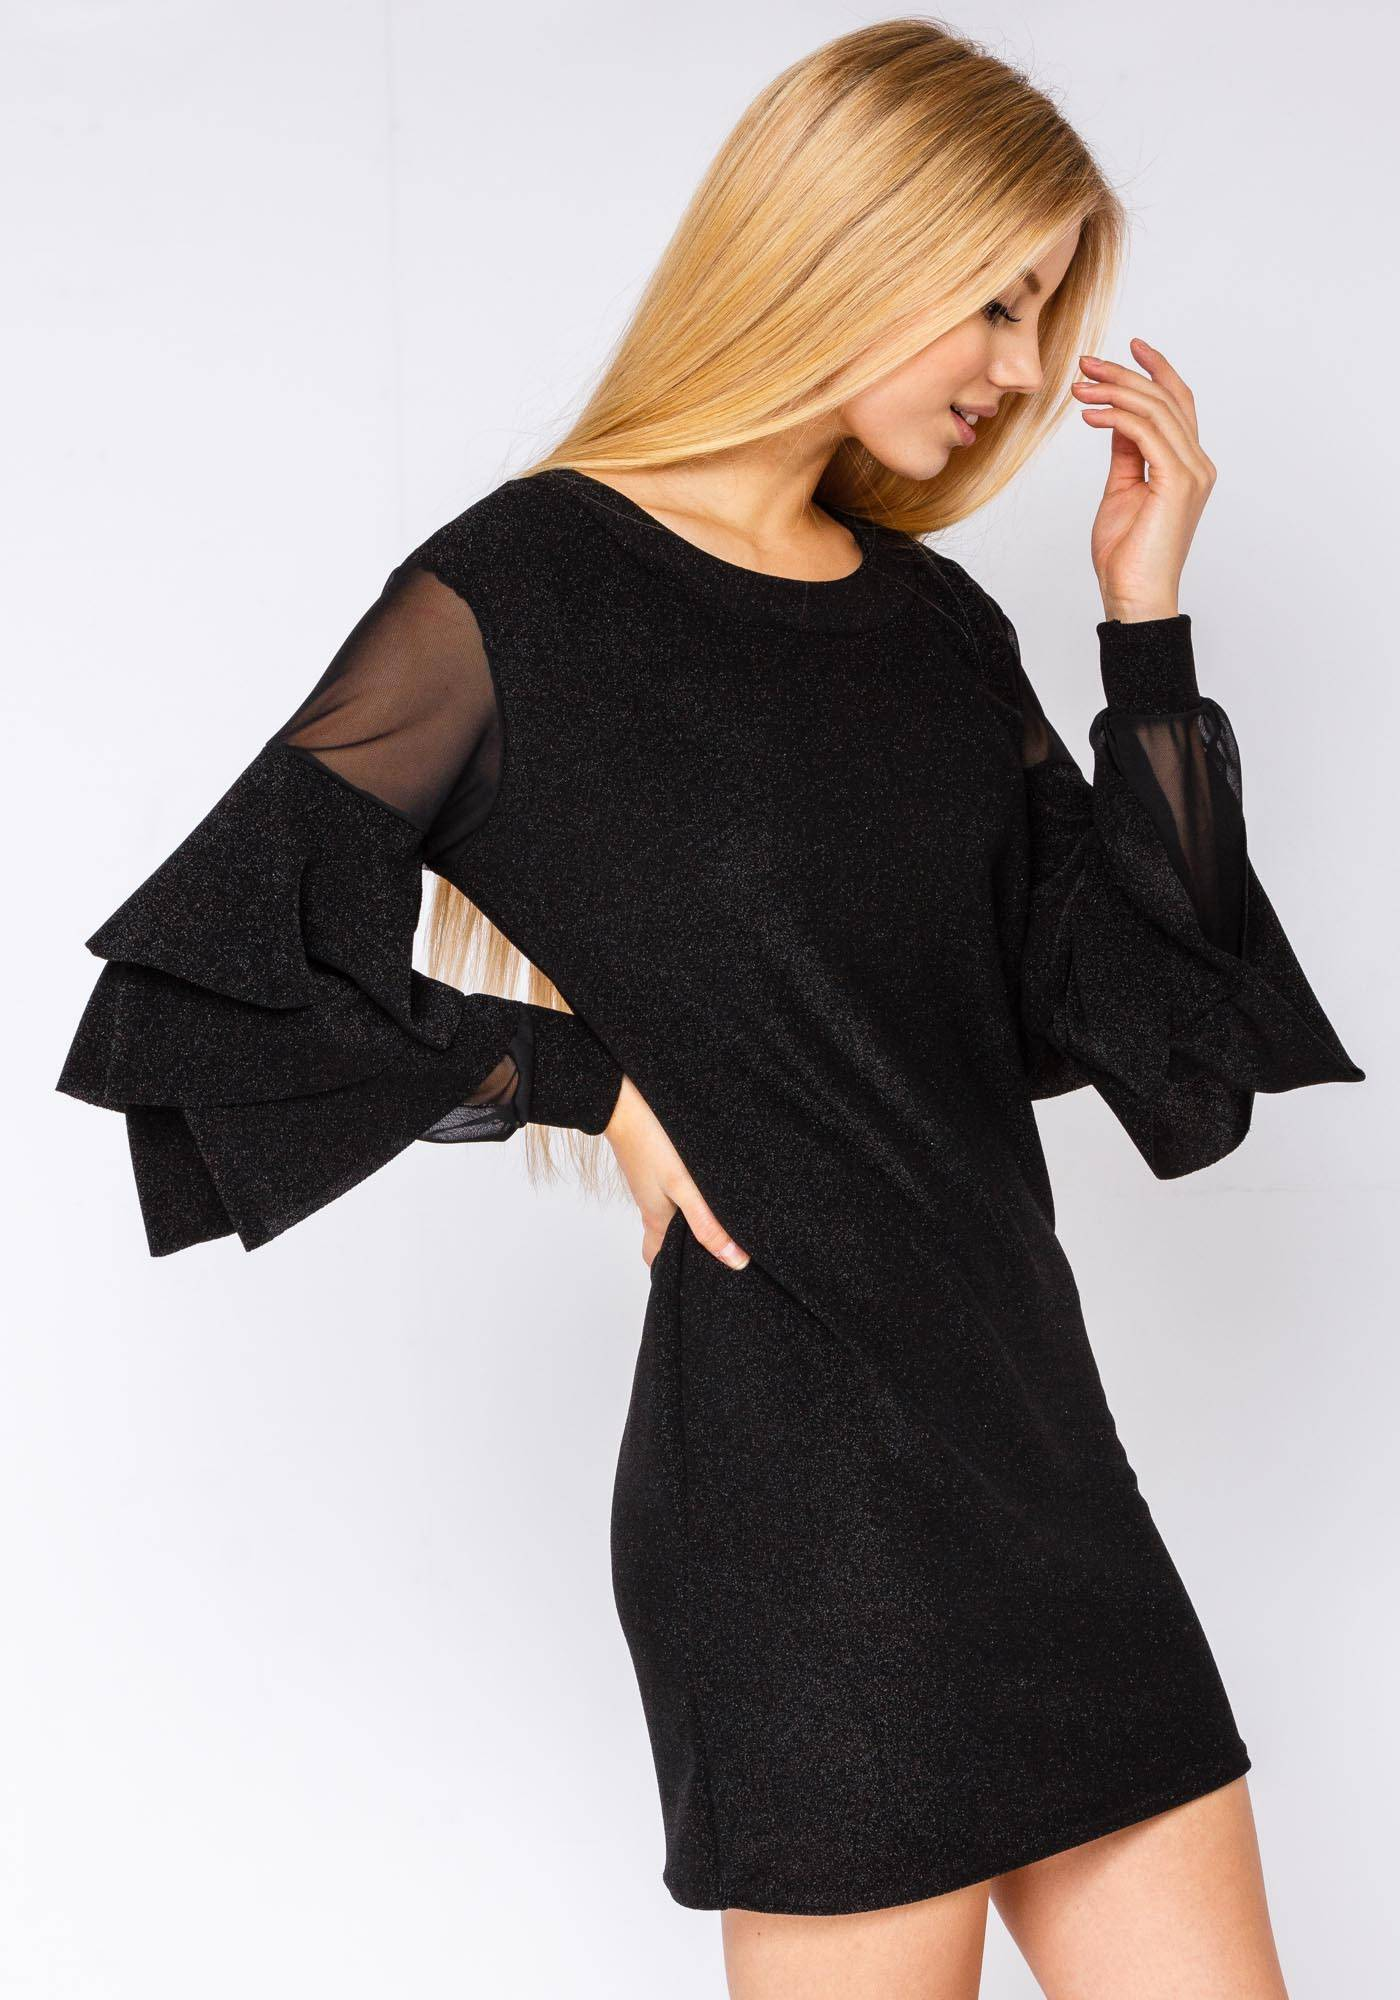 Image of Fiorellashop Glitter Holiday Dress With Frill Sleeve In Black